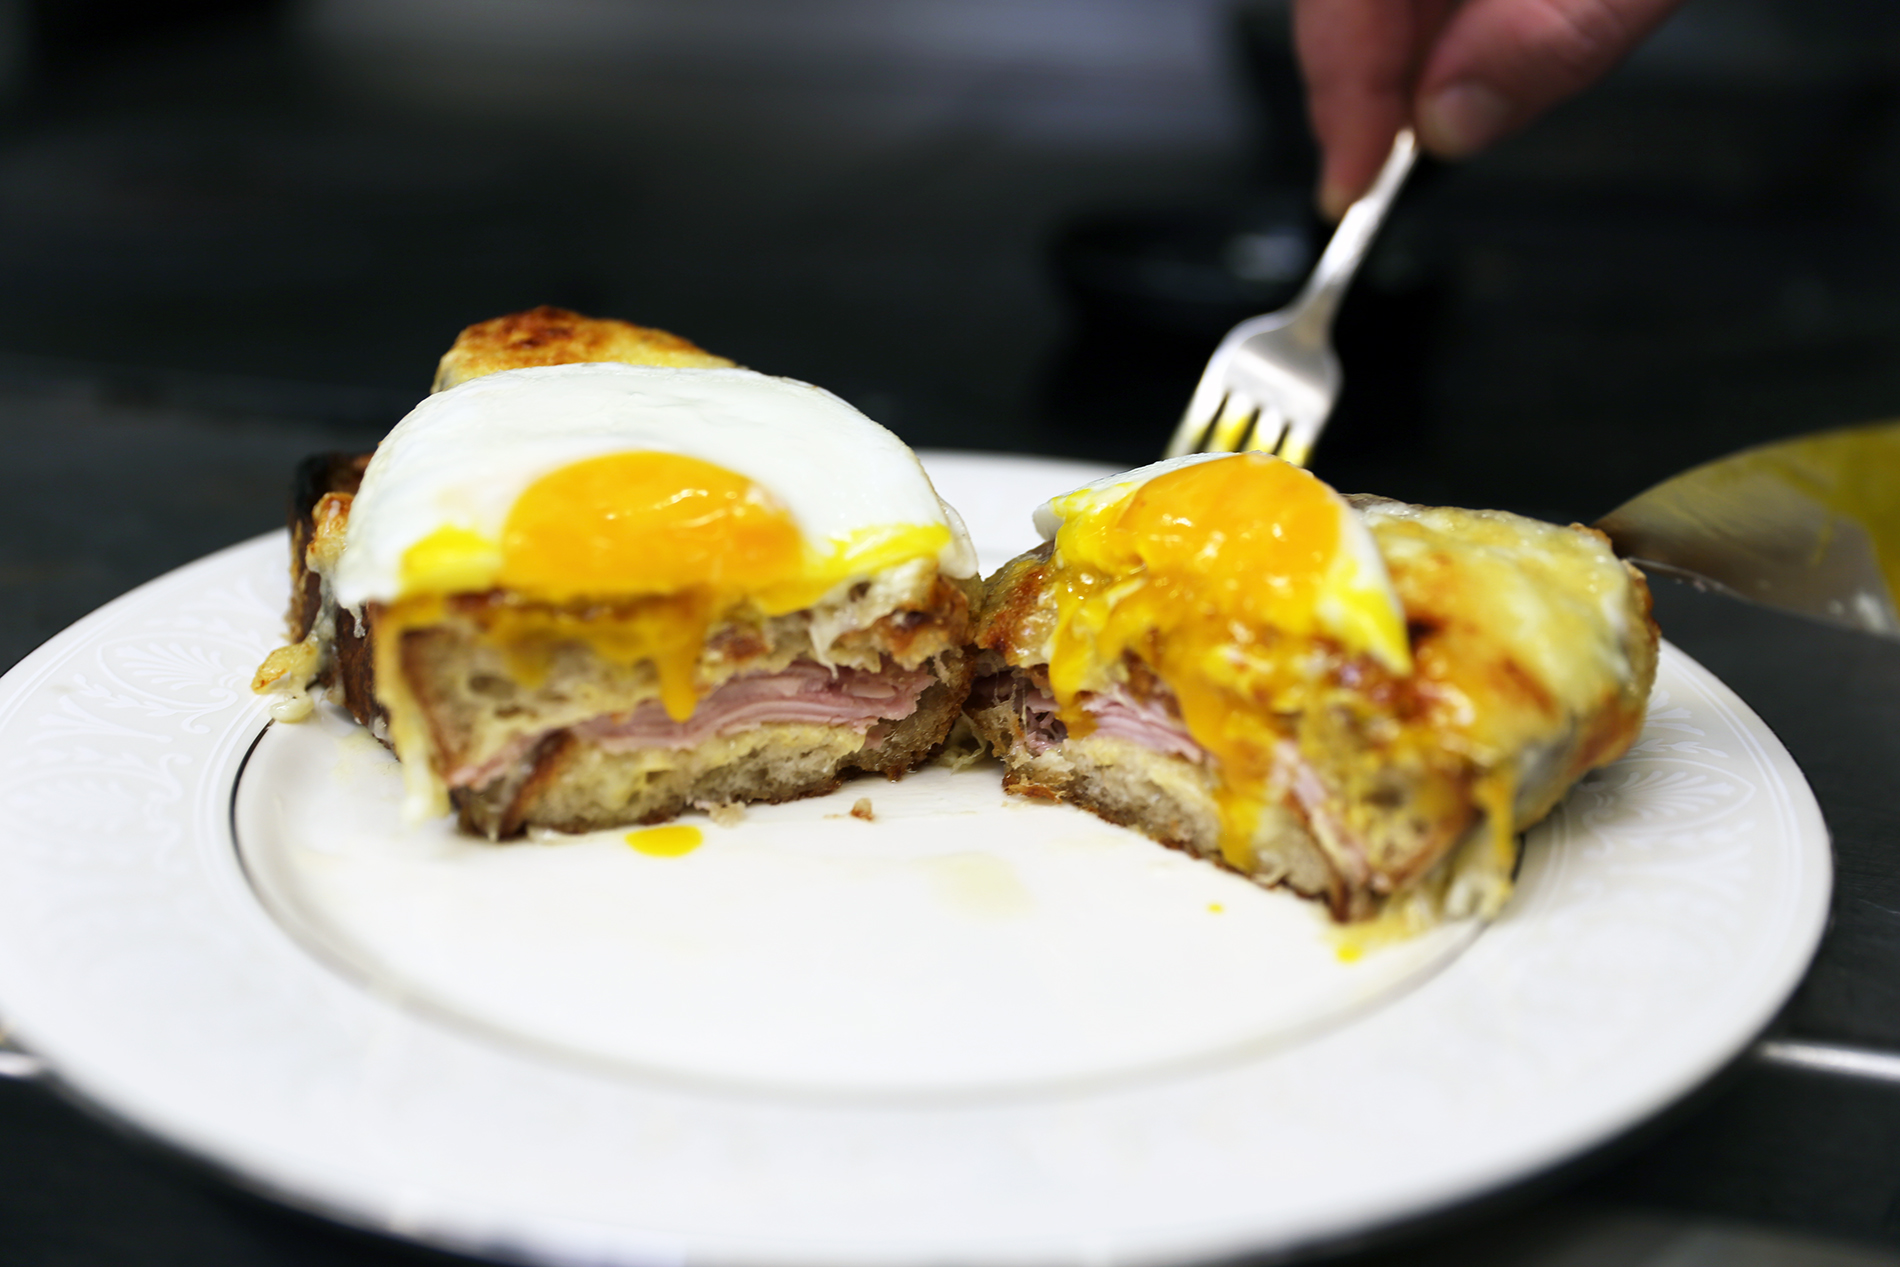 How-To: Make a Croque Madame with Kris Morningstar